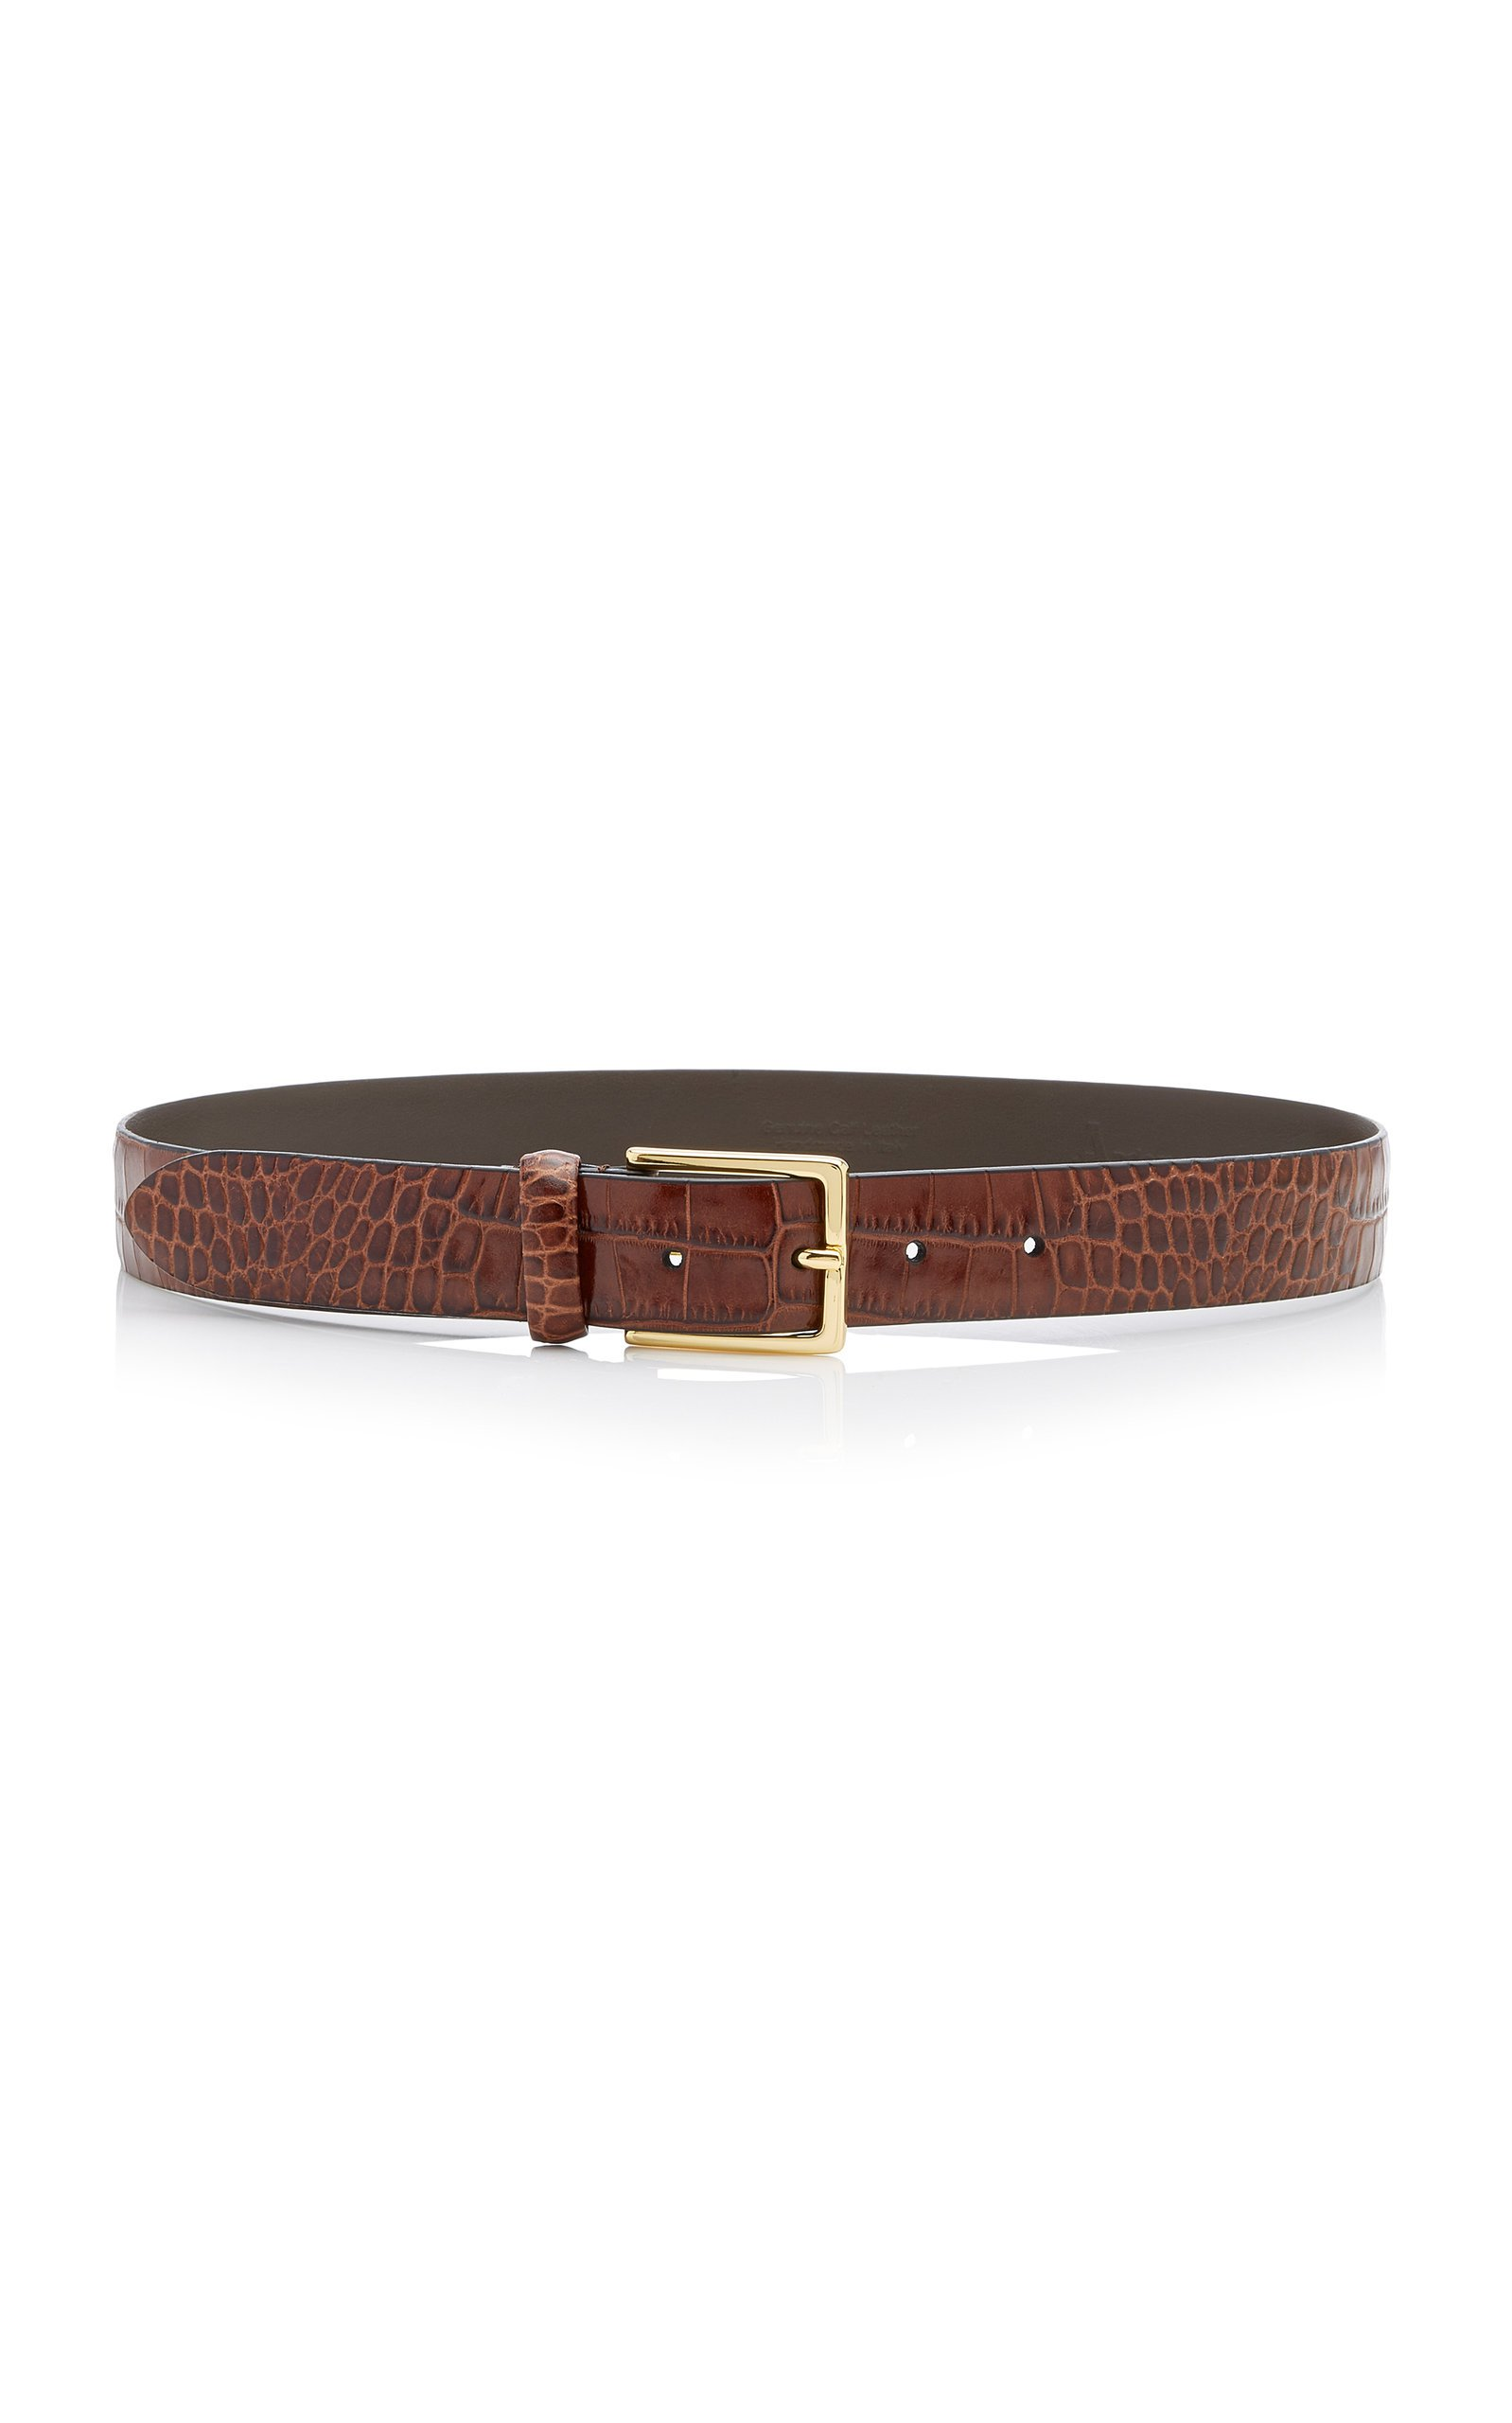 Anderson's Croc-Effect Glazed Leather Belt Size: 80 cm